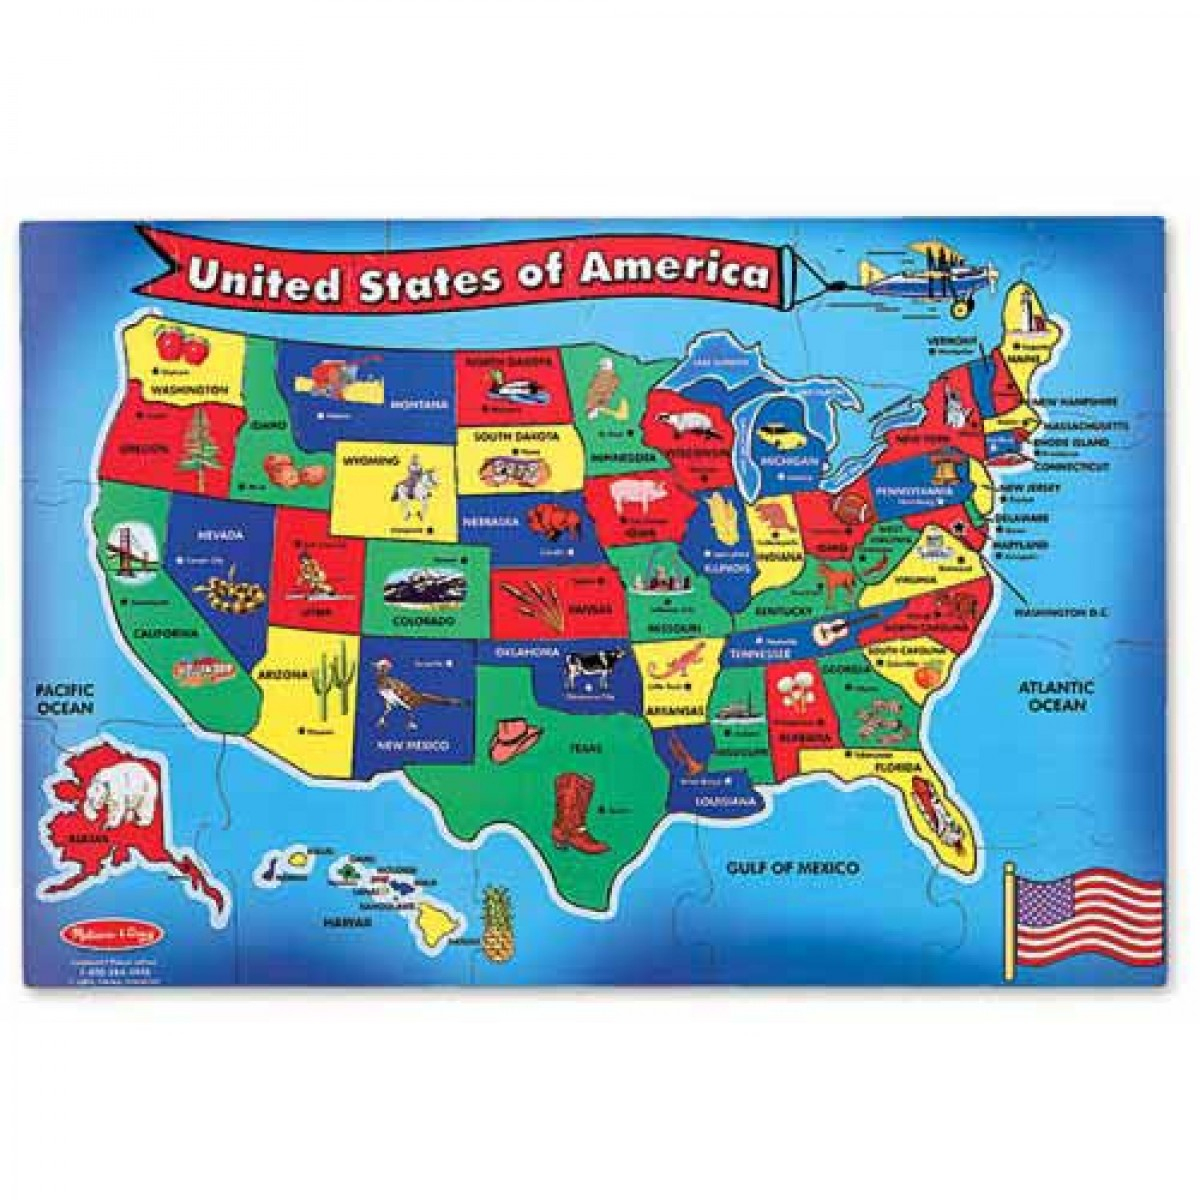 U S A Map Puzzlemelissa Amp Doug Printable Of United States - United States Map Puzzle Printable